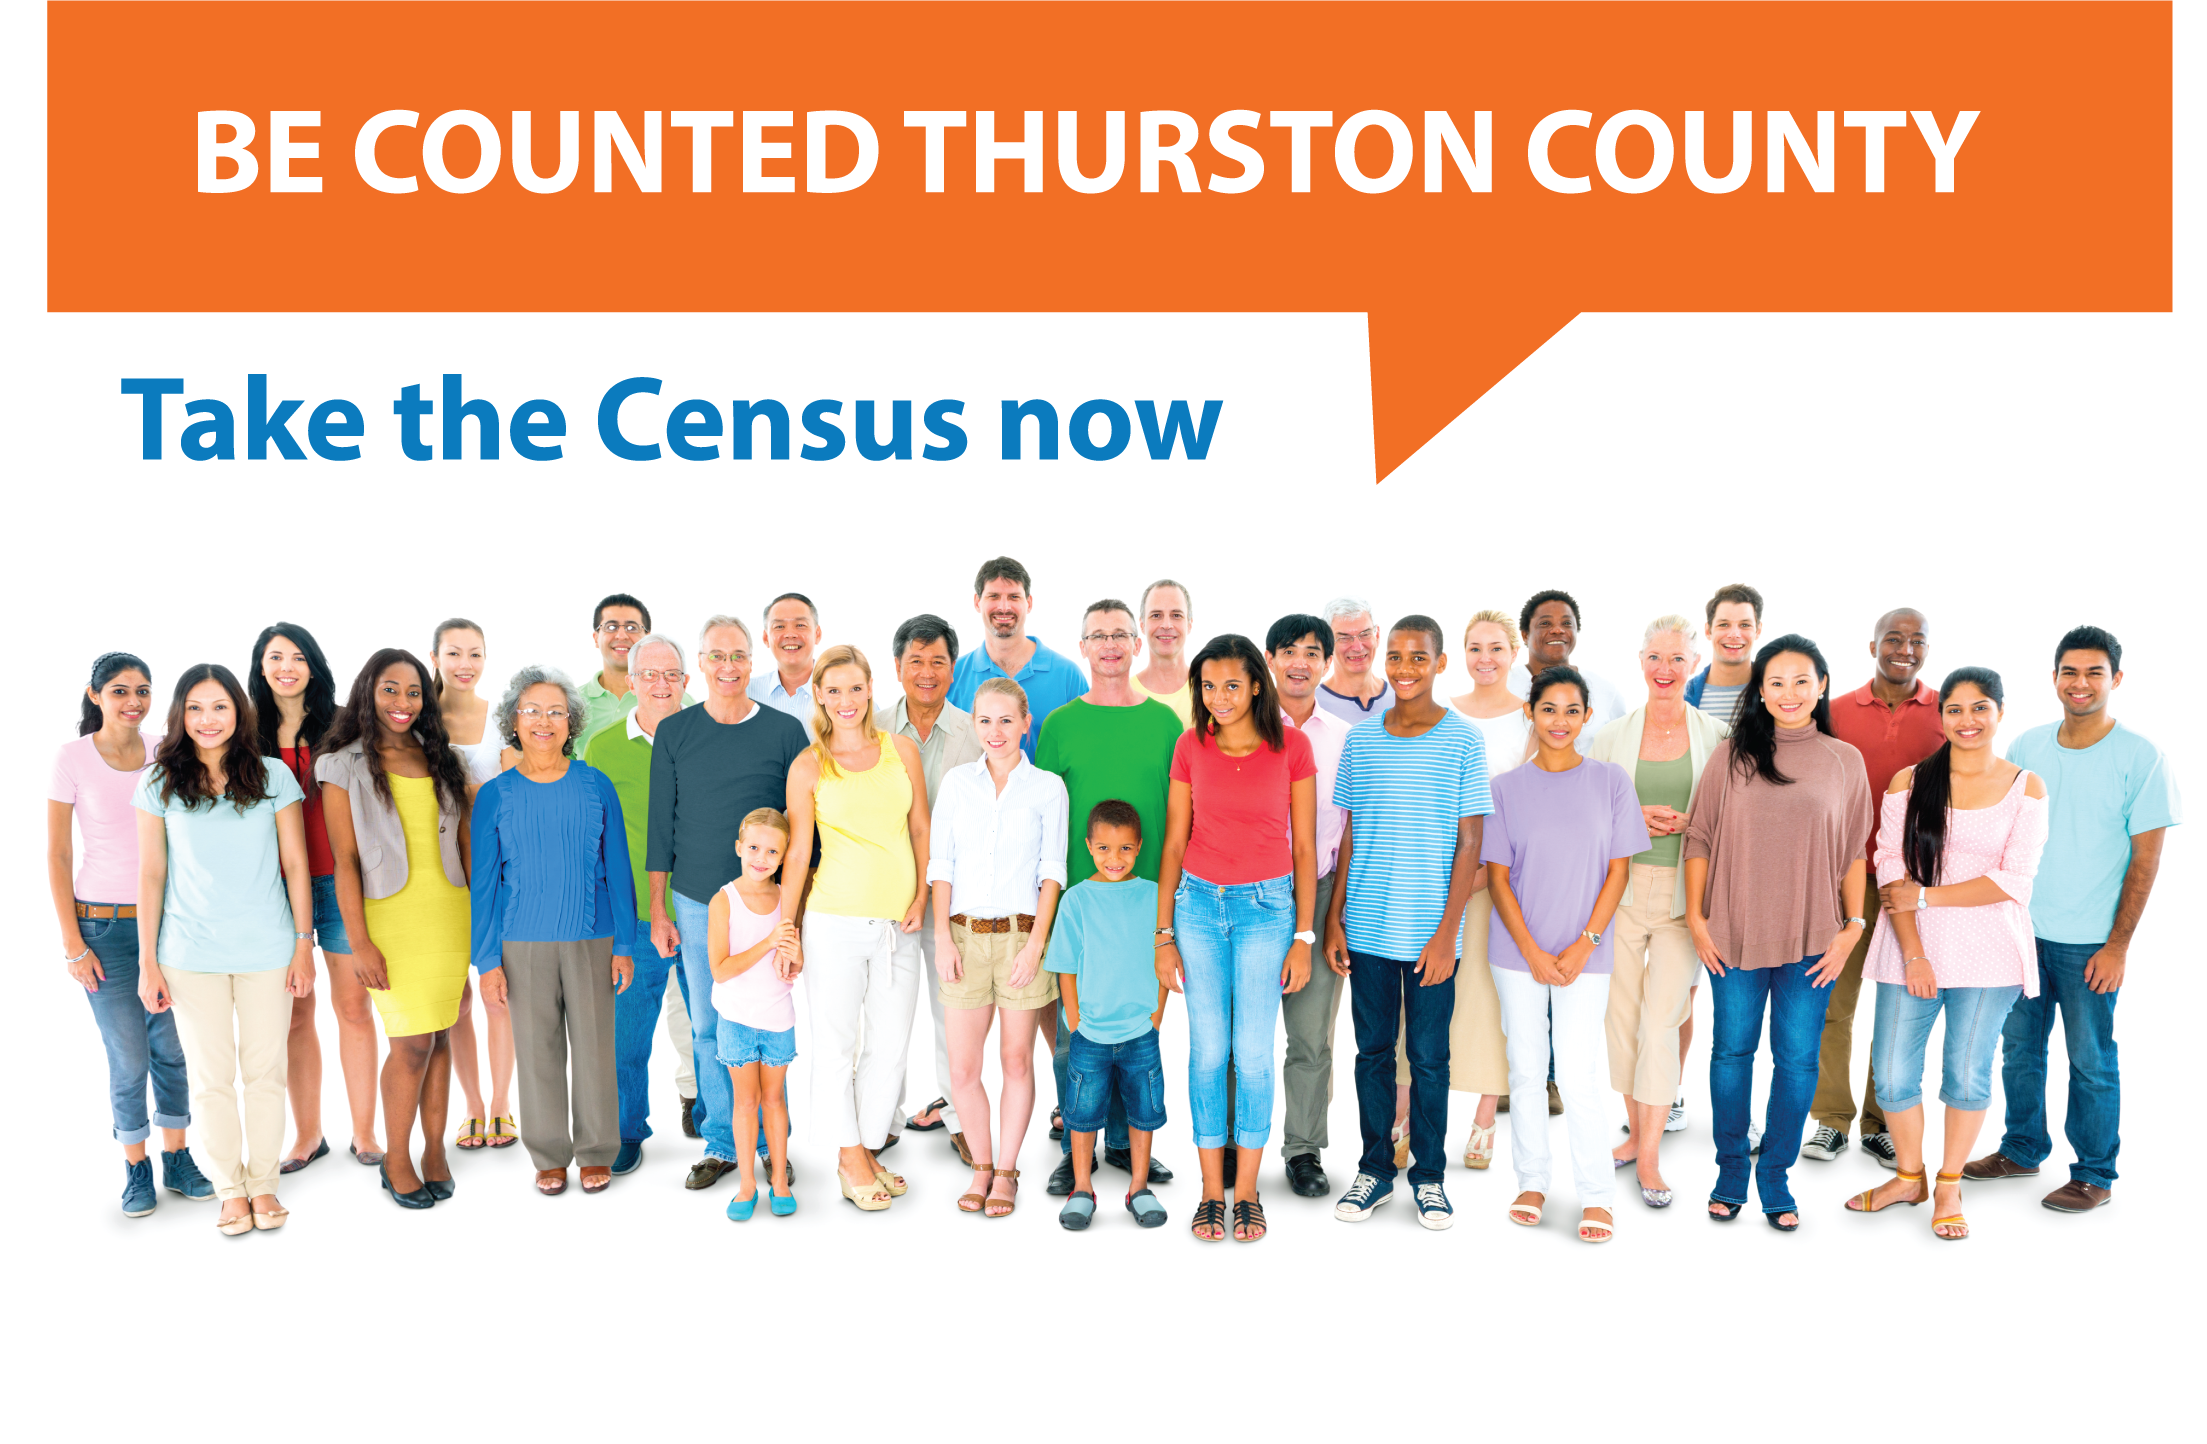 LINK: Be Counted Thurston County, take the census now Opens in new window